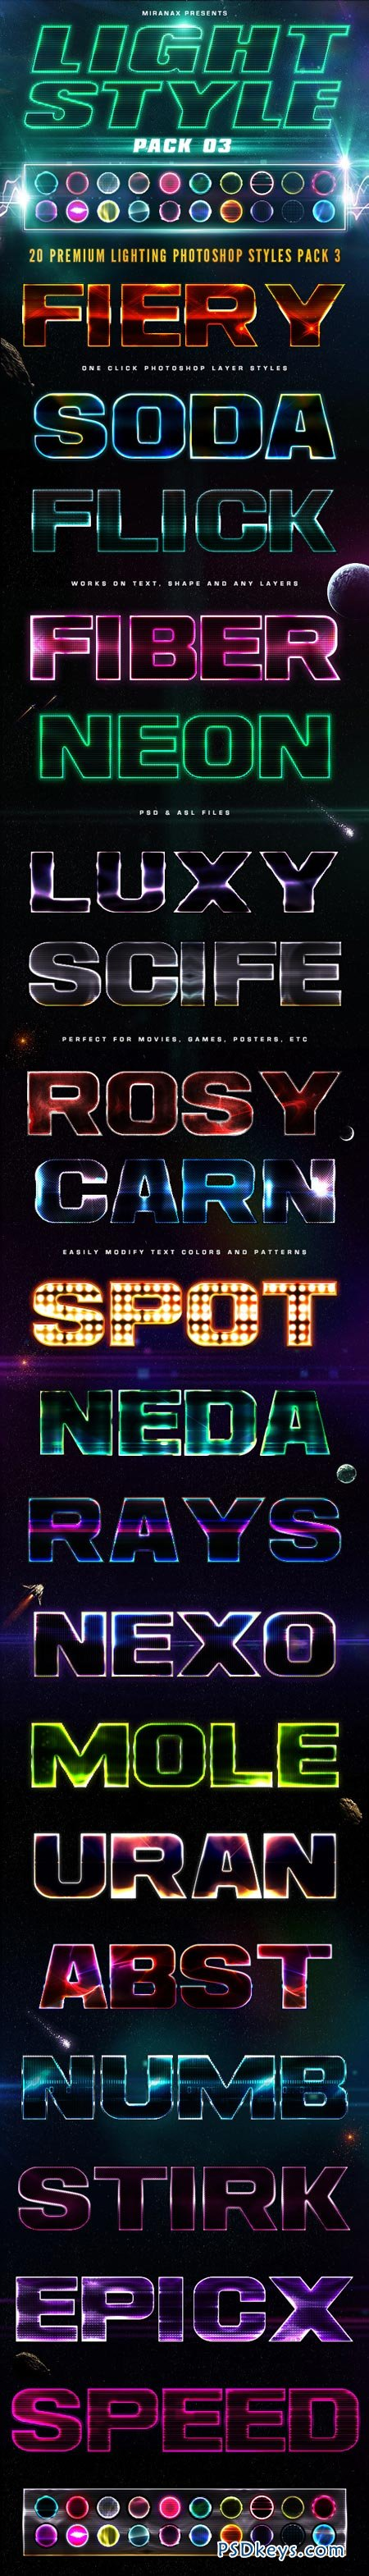 20 Lighting PSD Text Effects - Pack 03 8888639